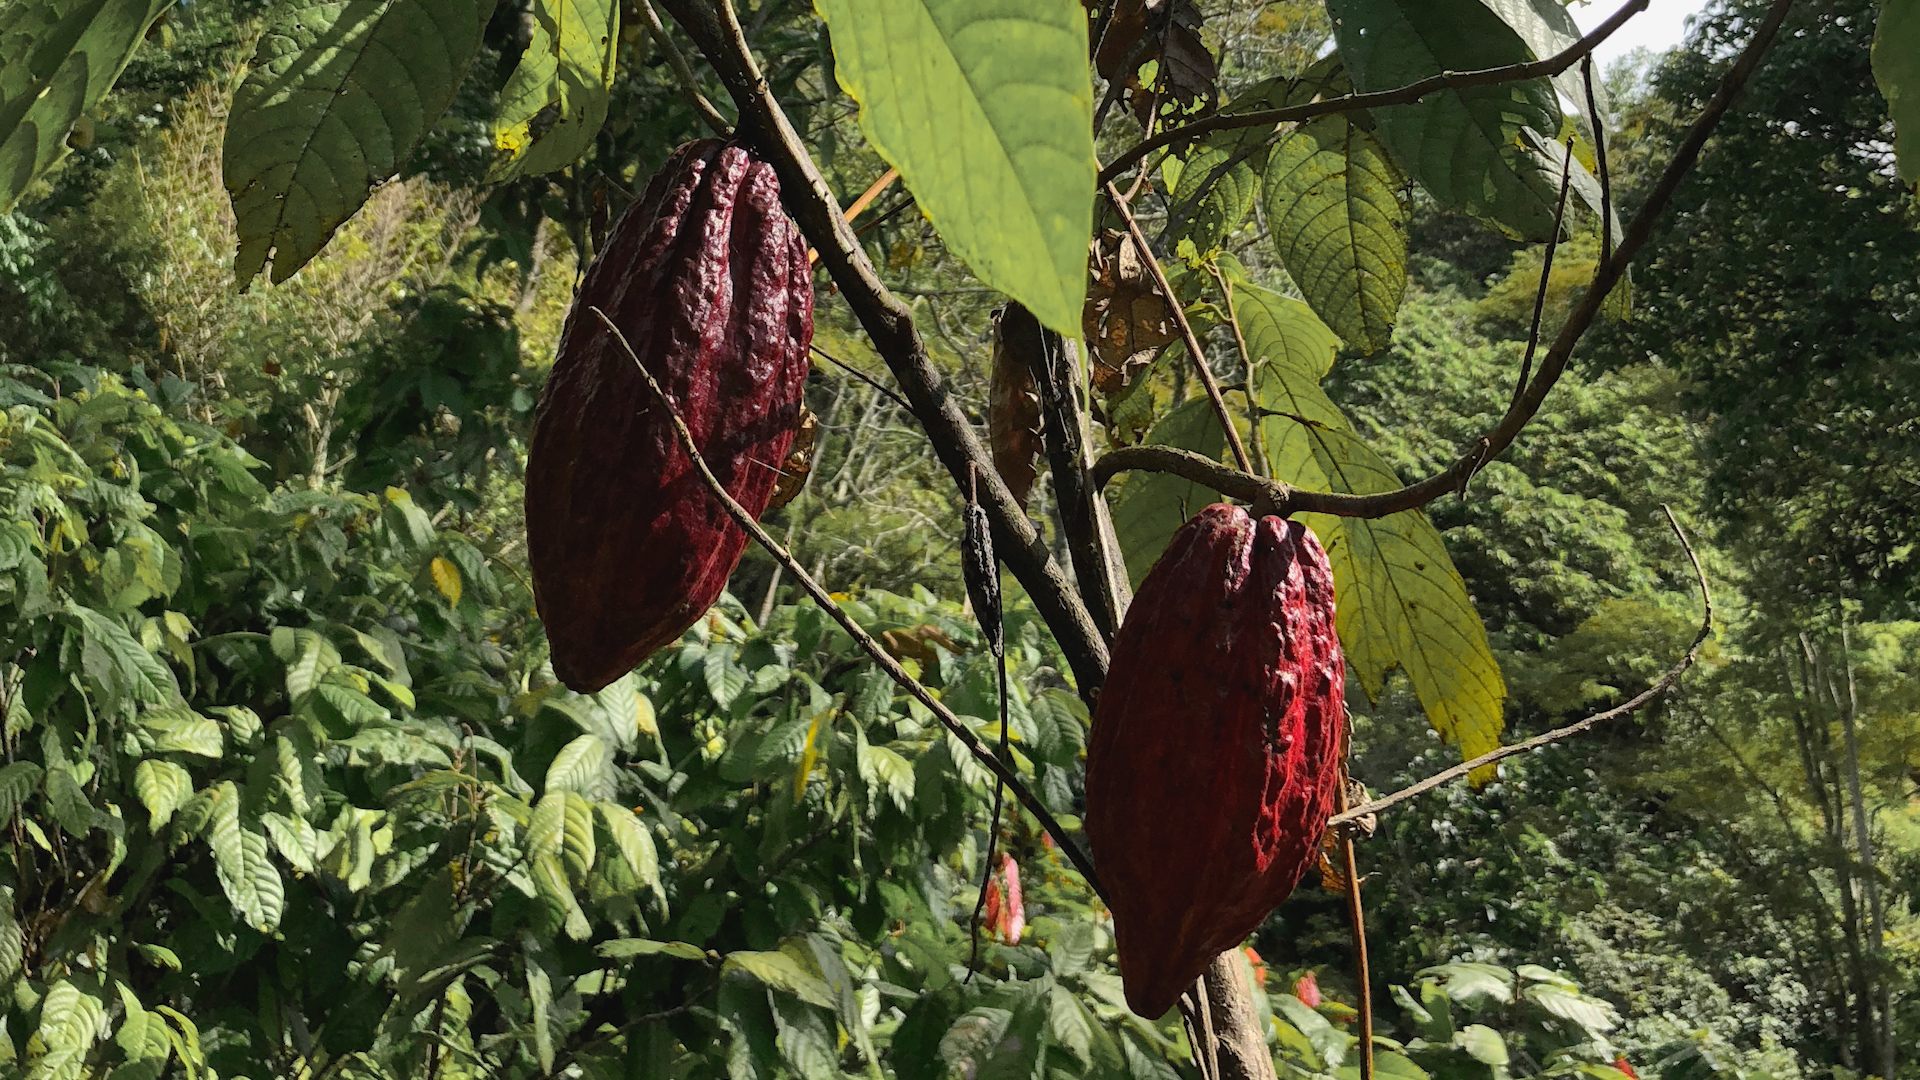 Unrippened fruit of the cacao tree.